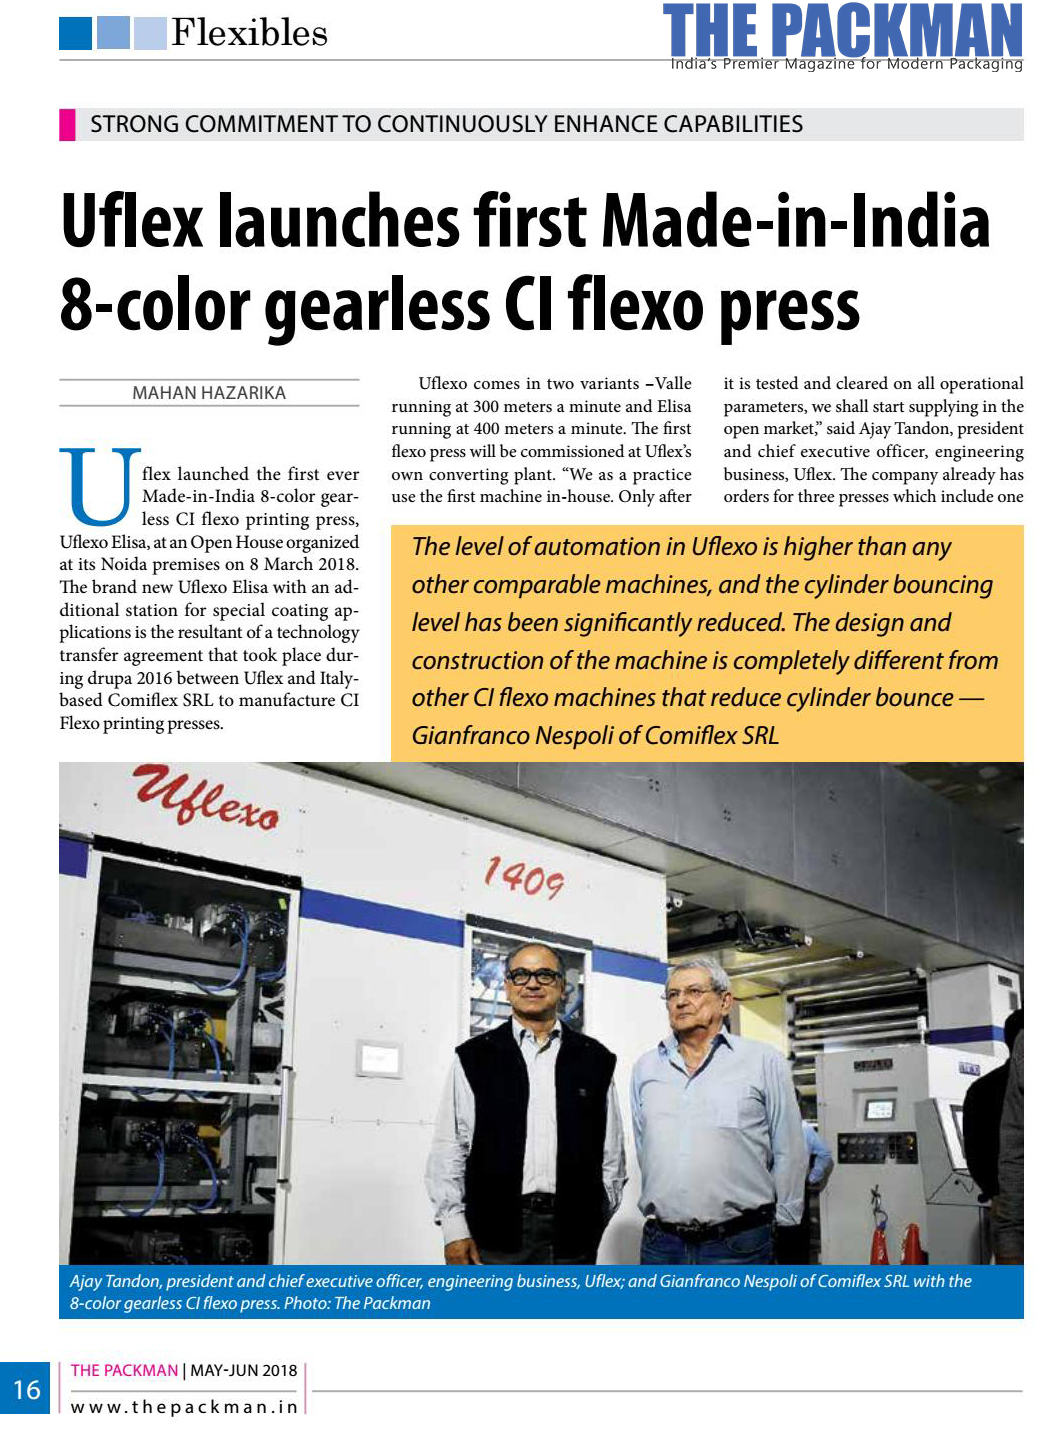 Uflex unveils first in house made gearless C.I. flexo printing machine  – reports THE PACKMAN | MAY-JUN 2018 edition